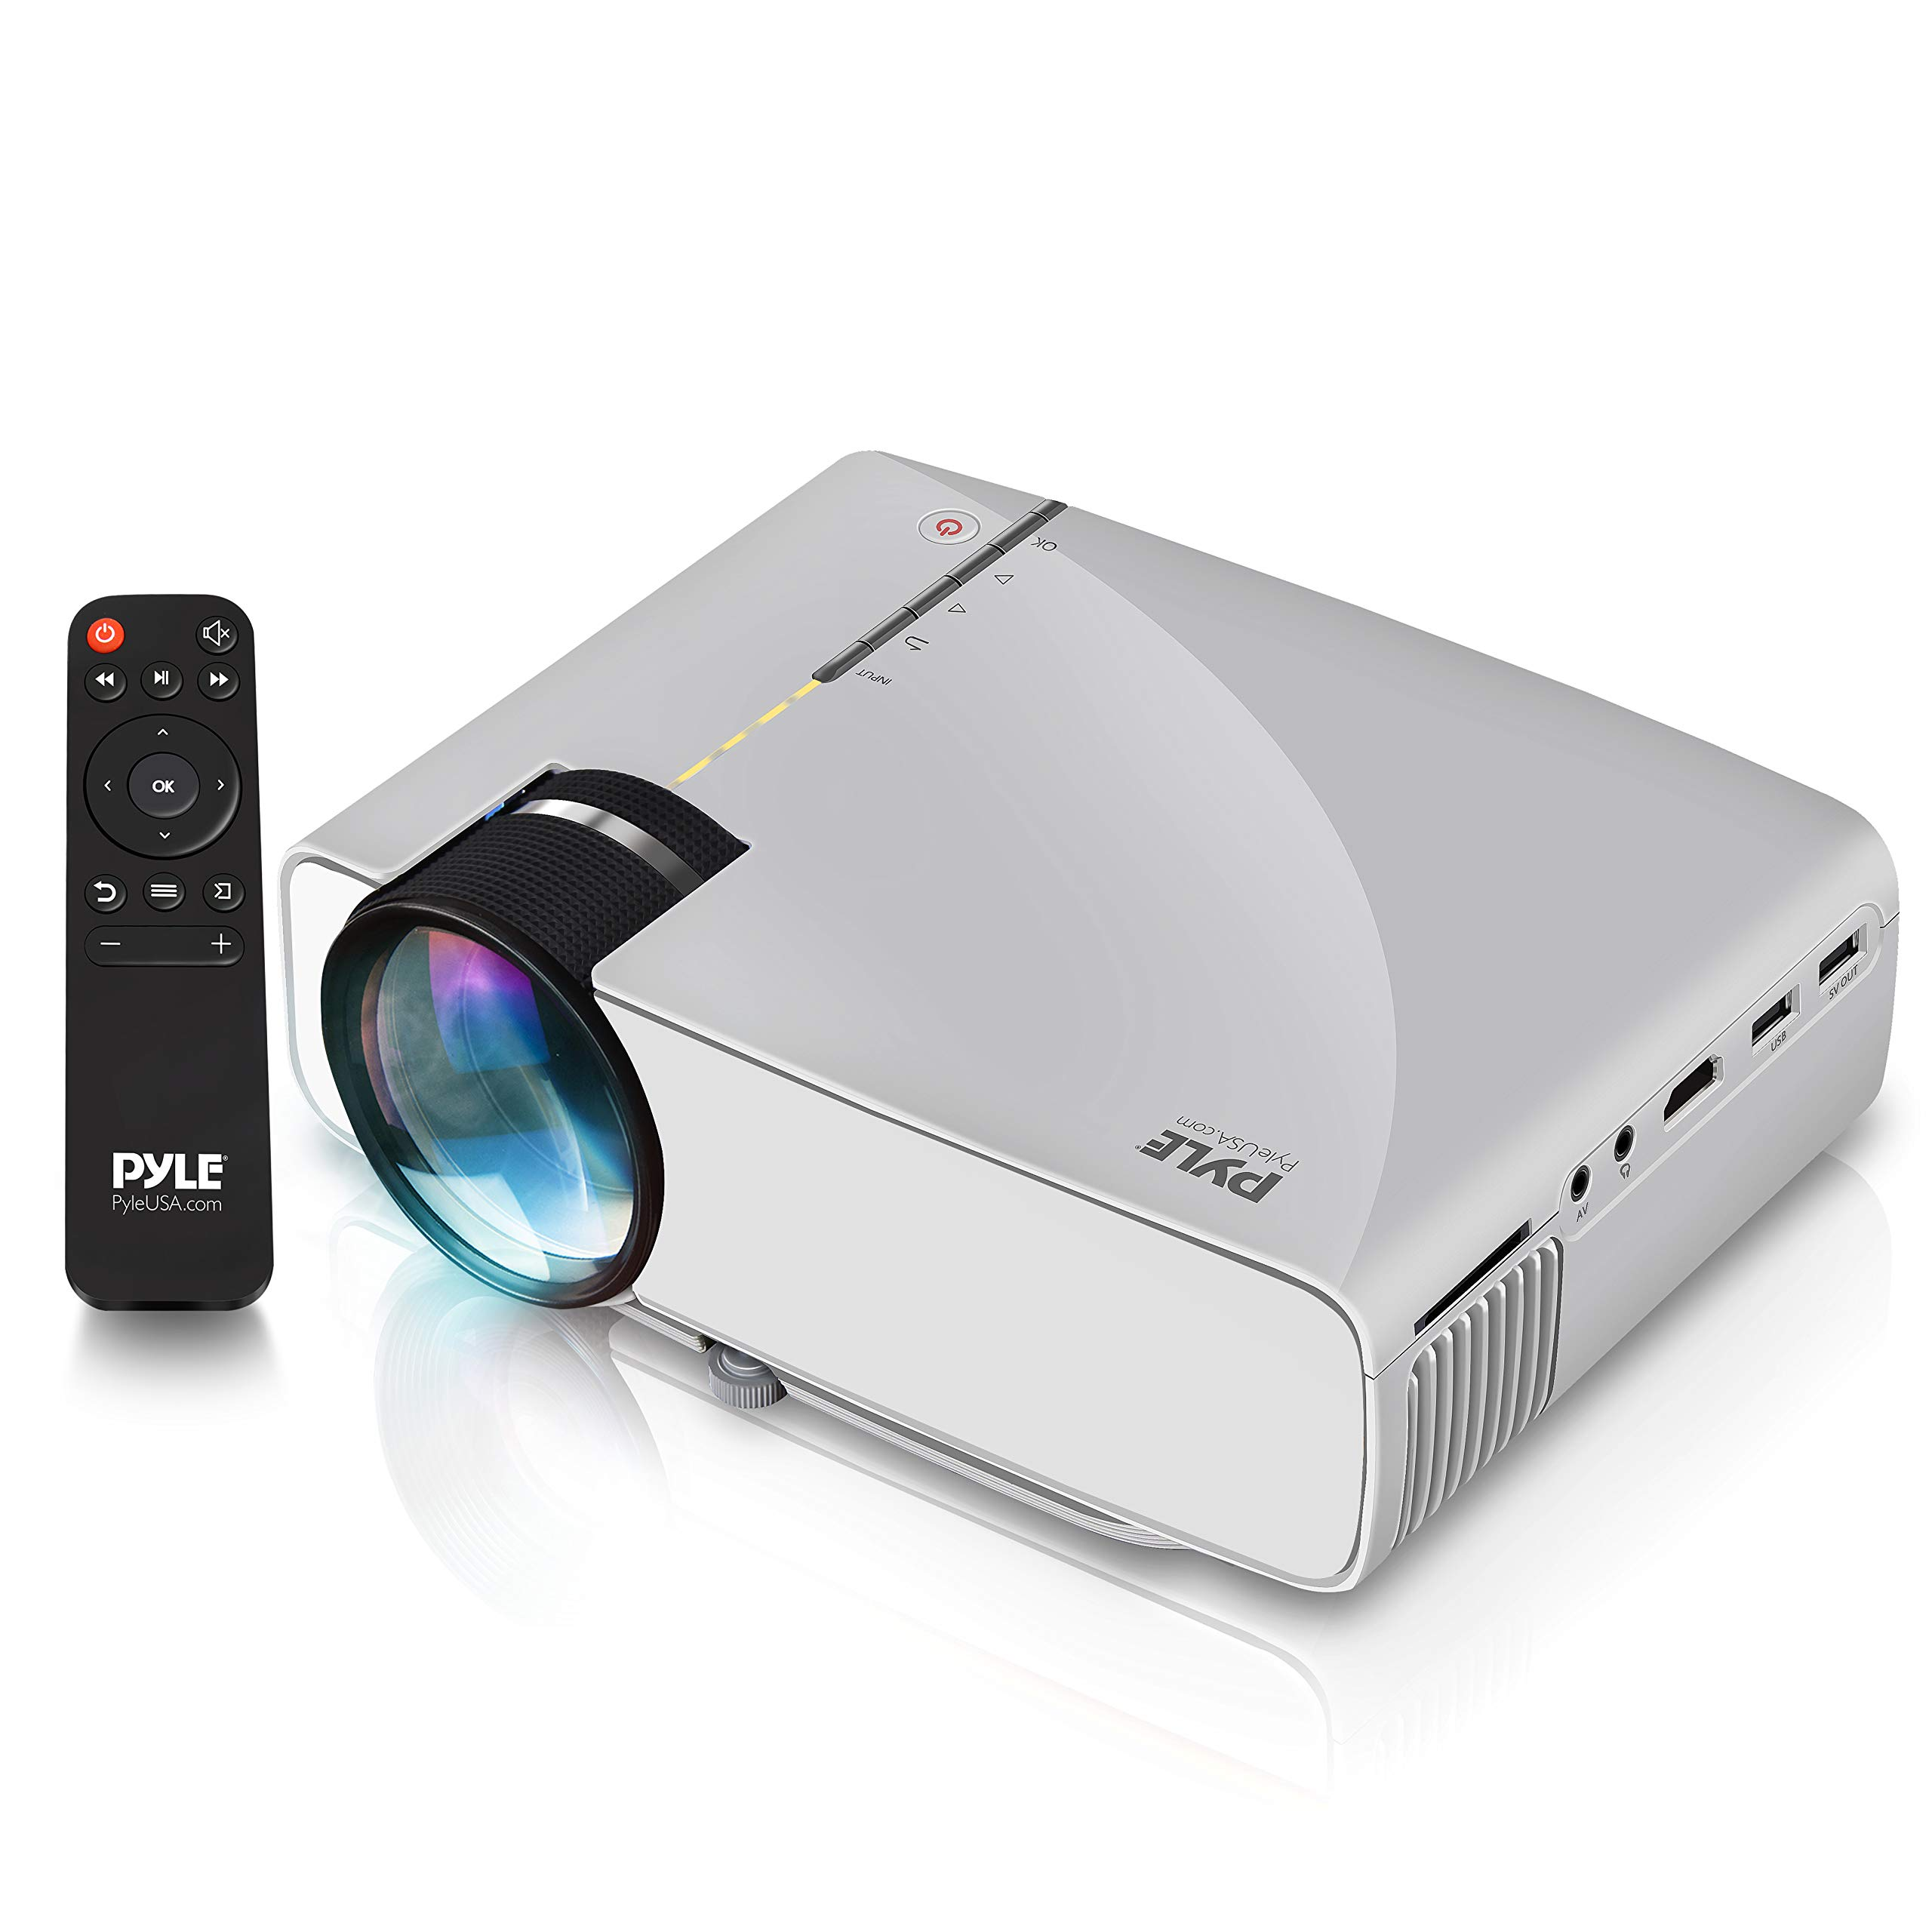 "Portable Multimedia Home Theater Projector - Compact HD 1080p High Lumen LED w/USB, HDMI, 50"" to 130"" Inch Adjustable Screen in Your Mac or PC, Built-in Stereo Speaker and Remote Control - Pyle"